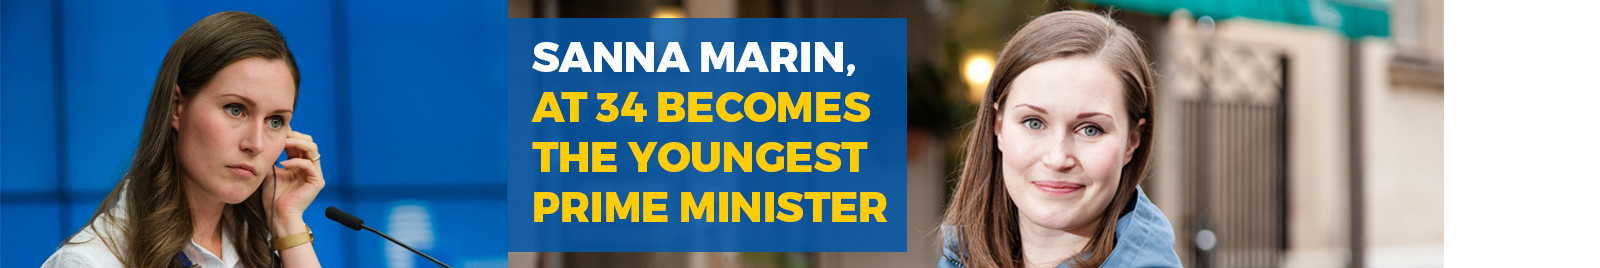 Sanna Marin, at 34 becomes the youngest prime minister